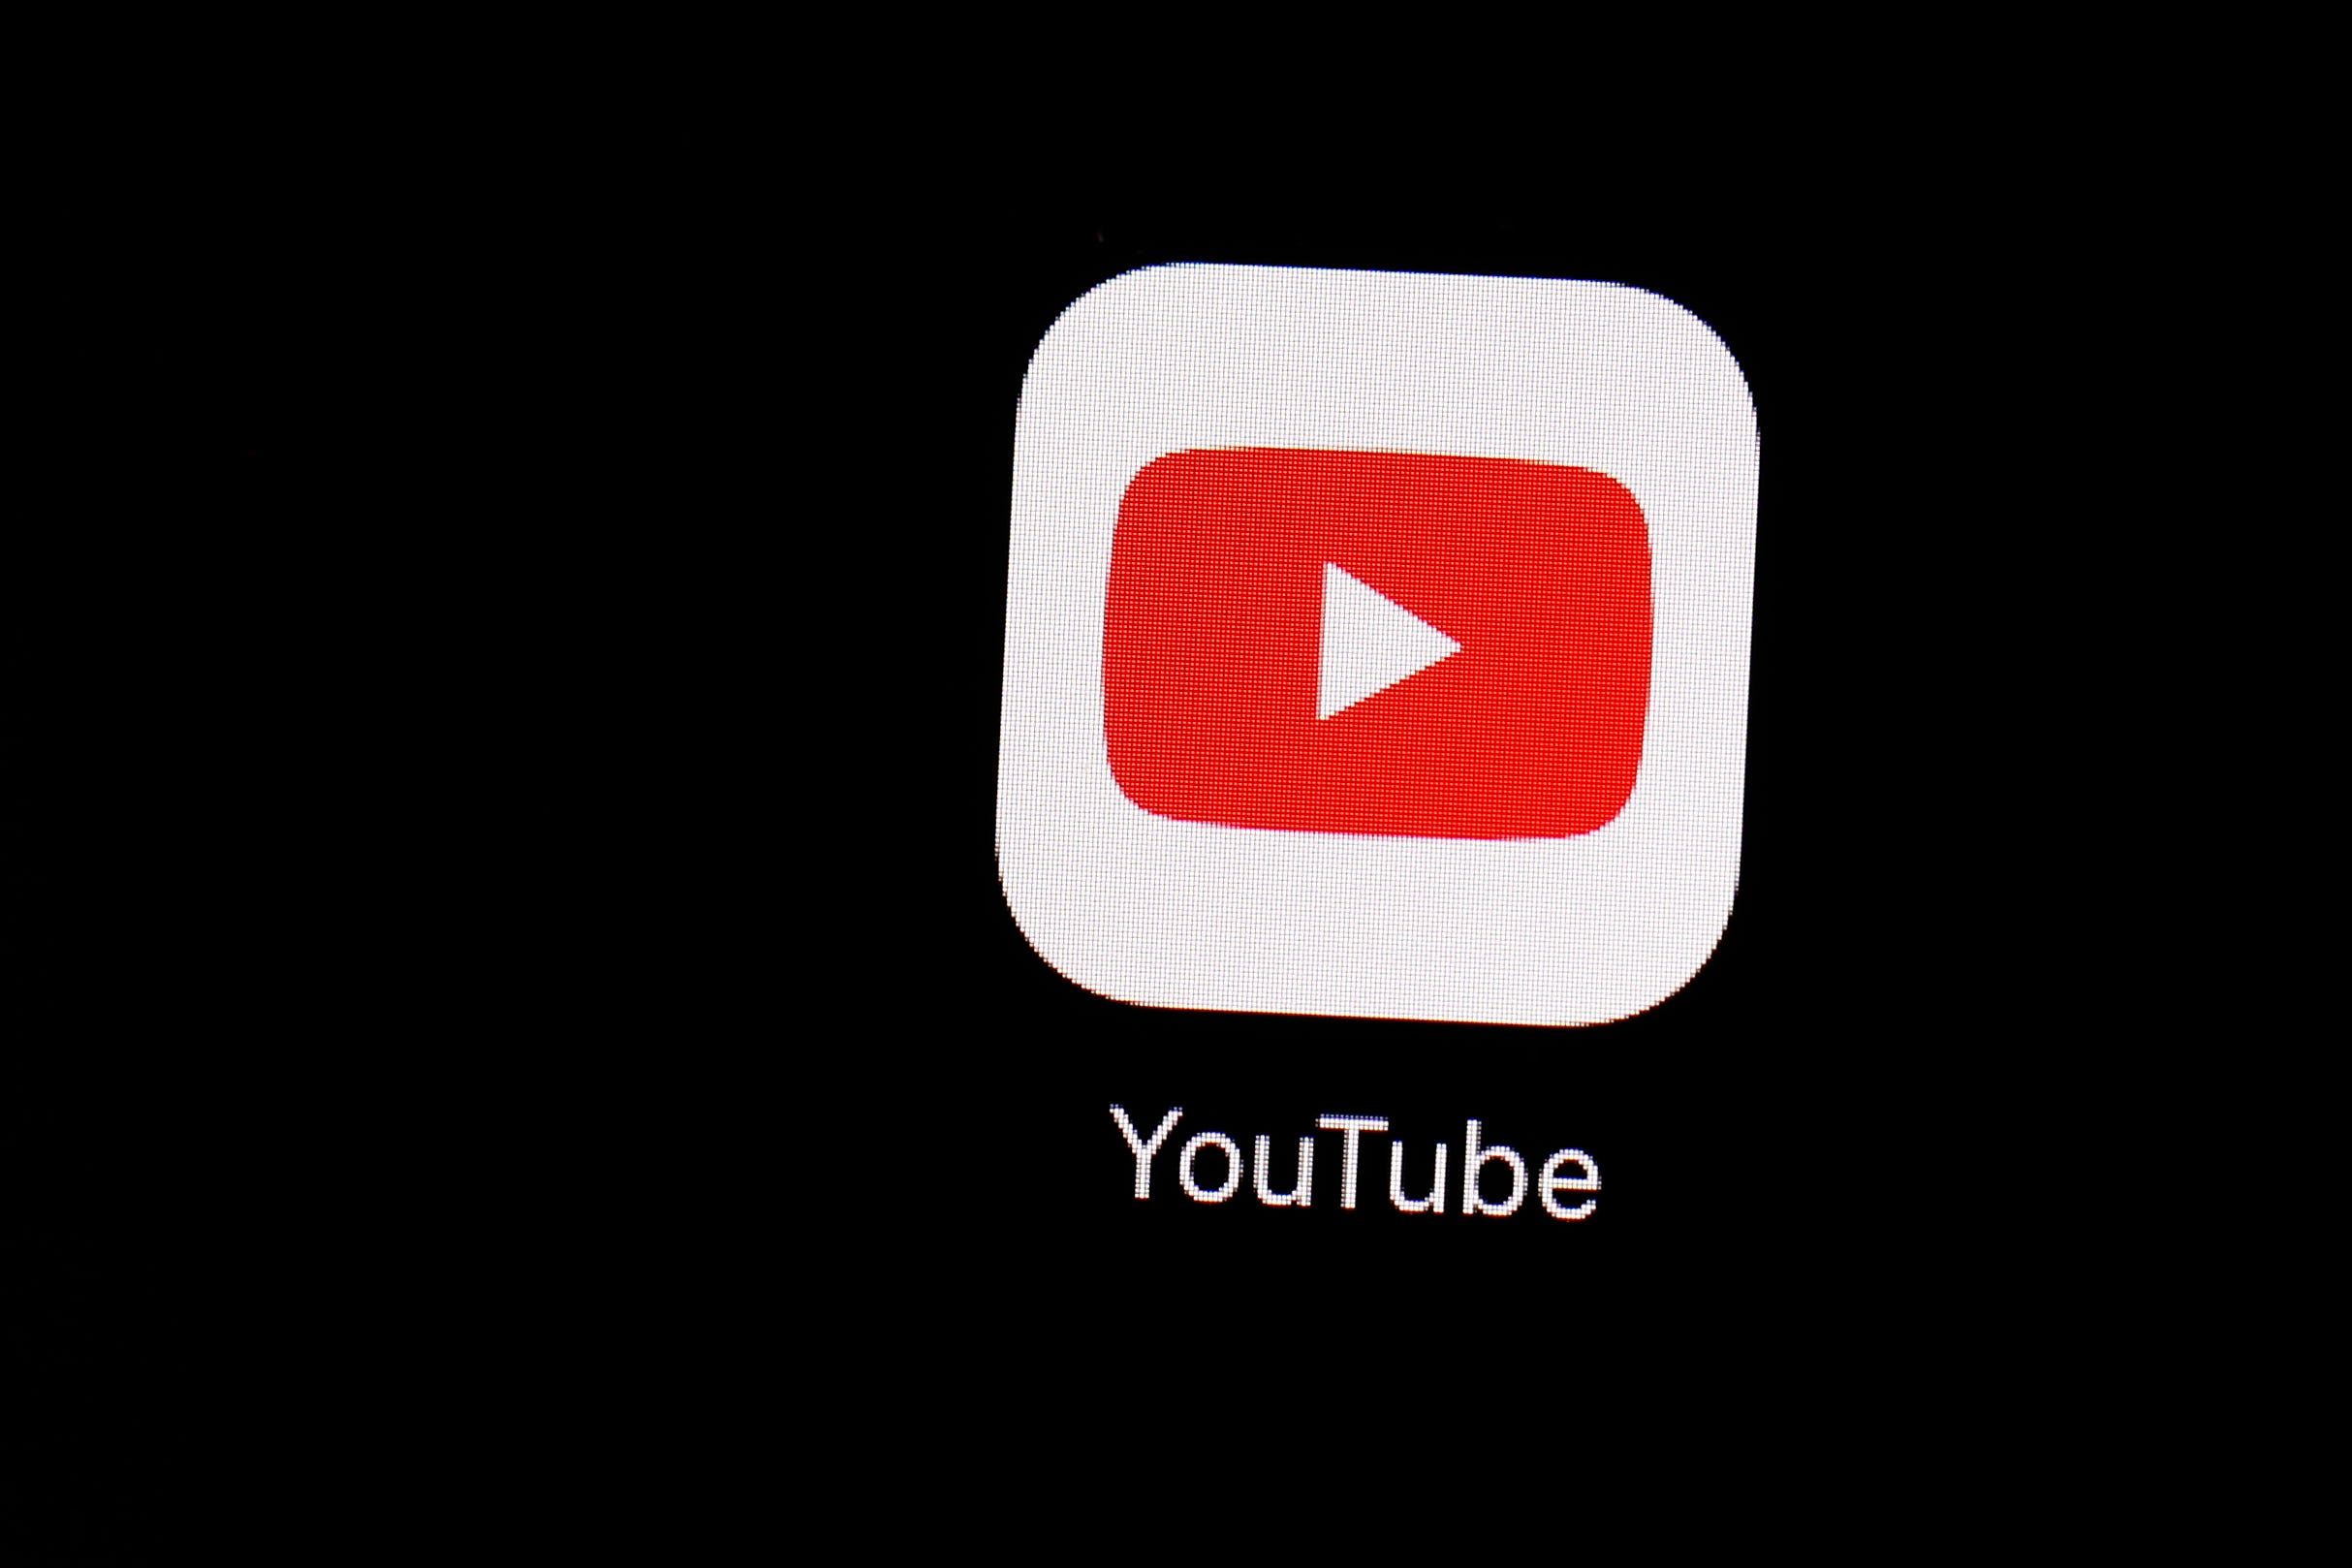 YouTube to remove misleading videos about the outcome of the U.S. presidential election